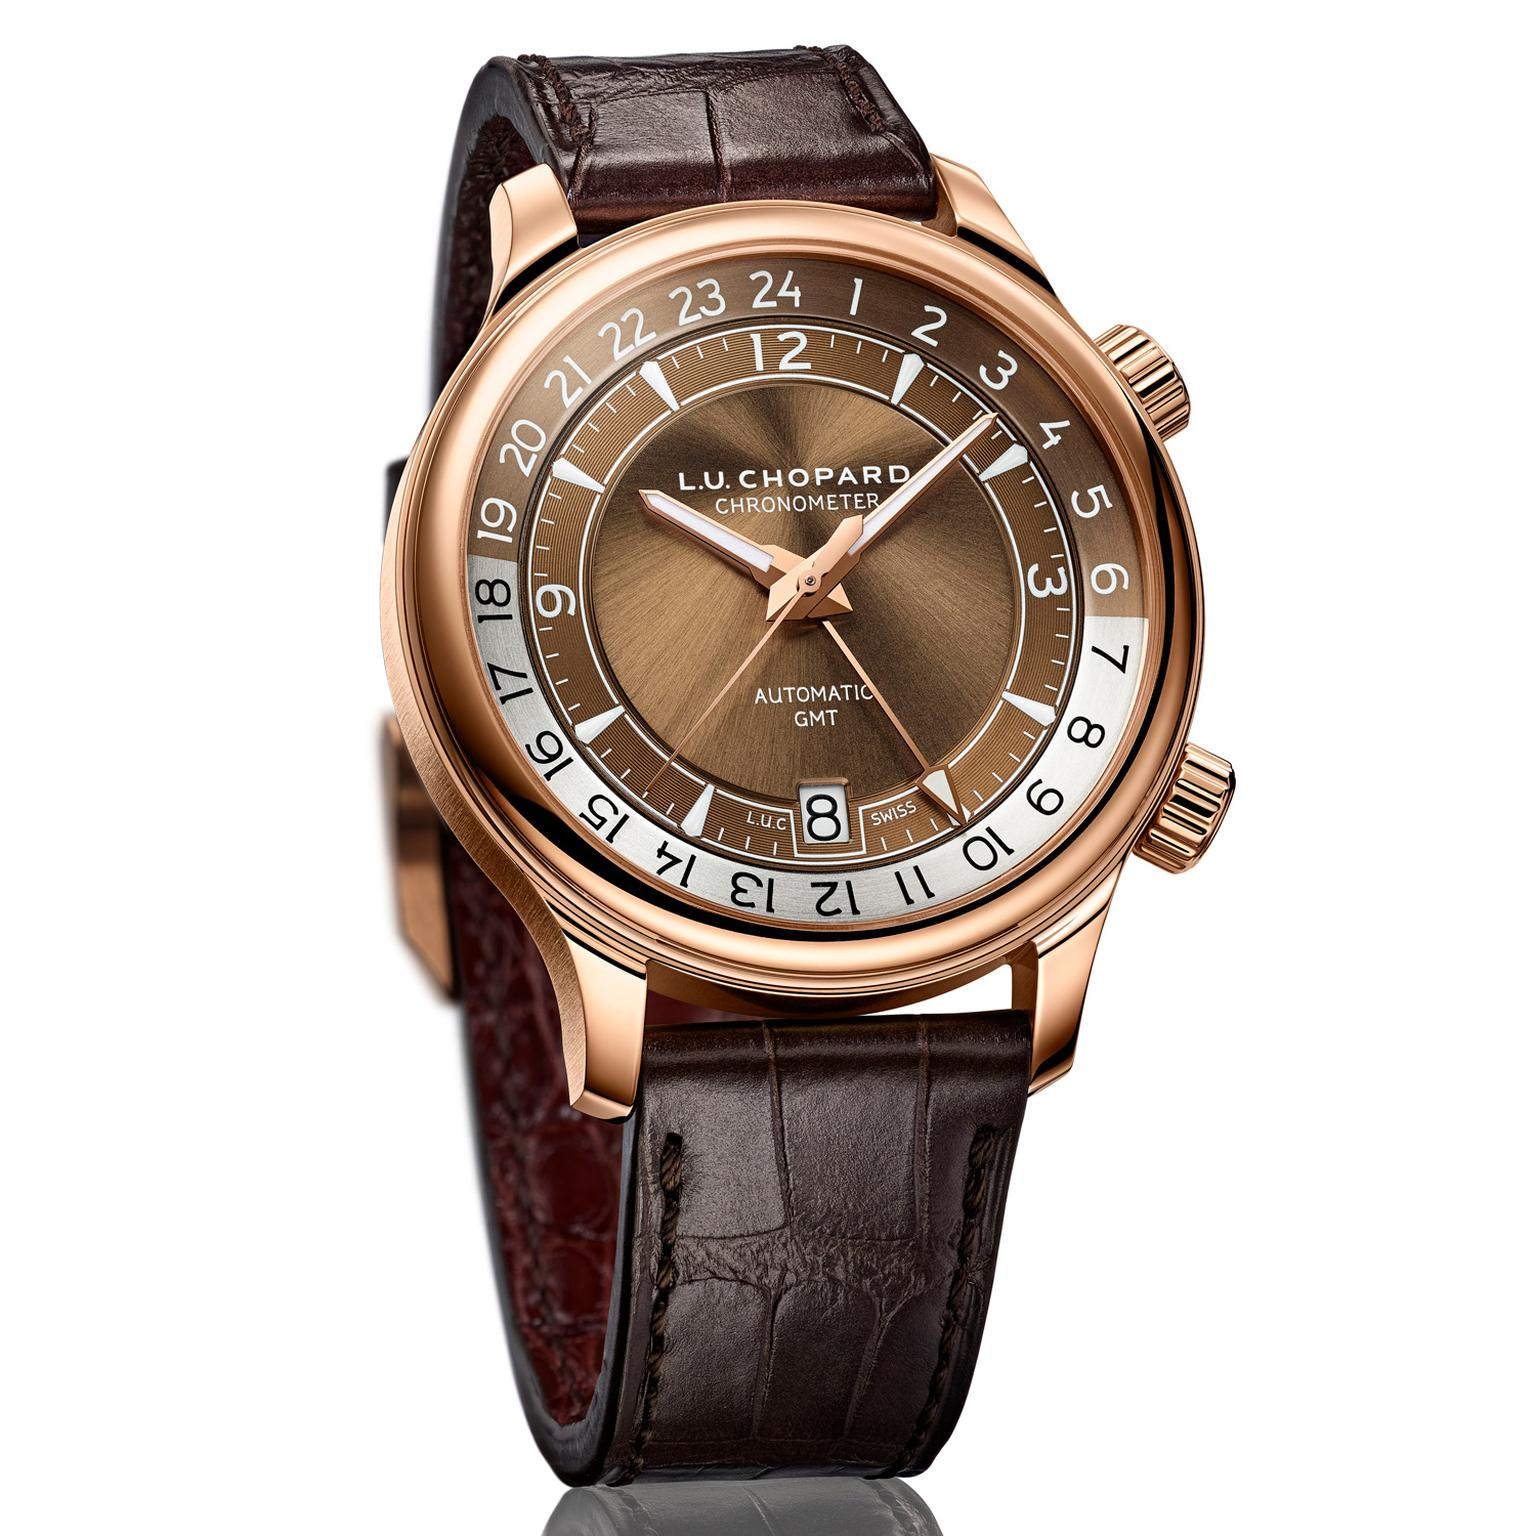 Chopard L.U.C GMT One watch in rose gold